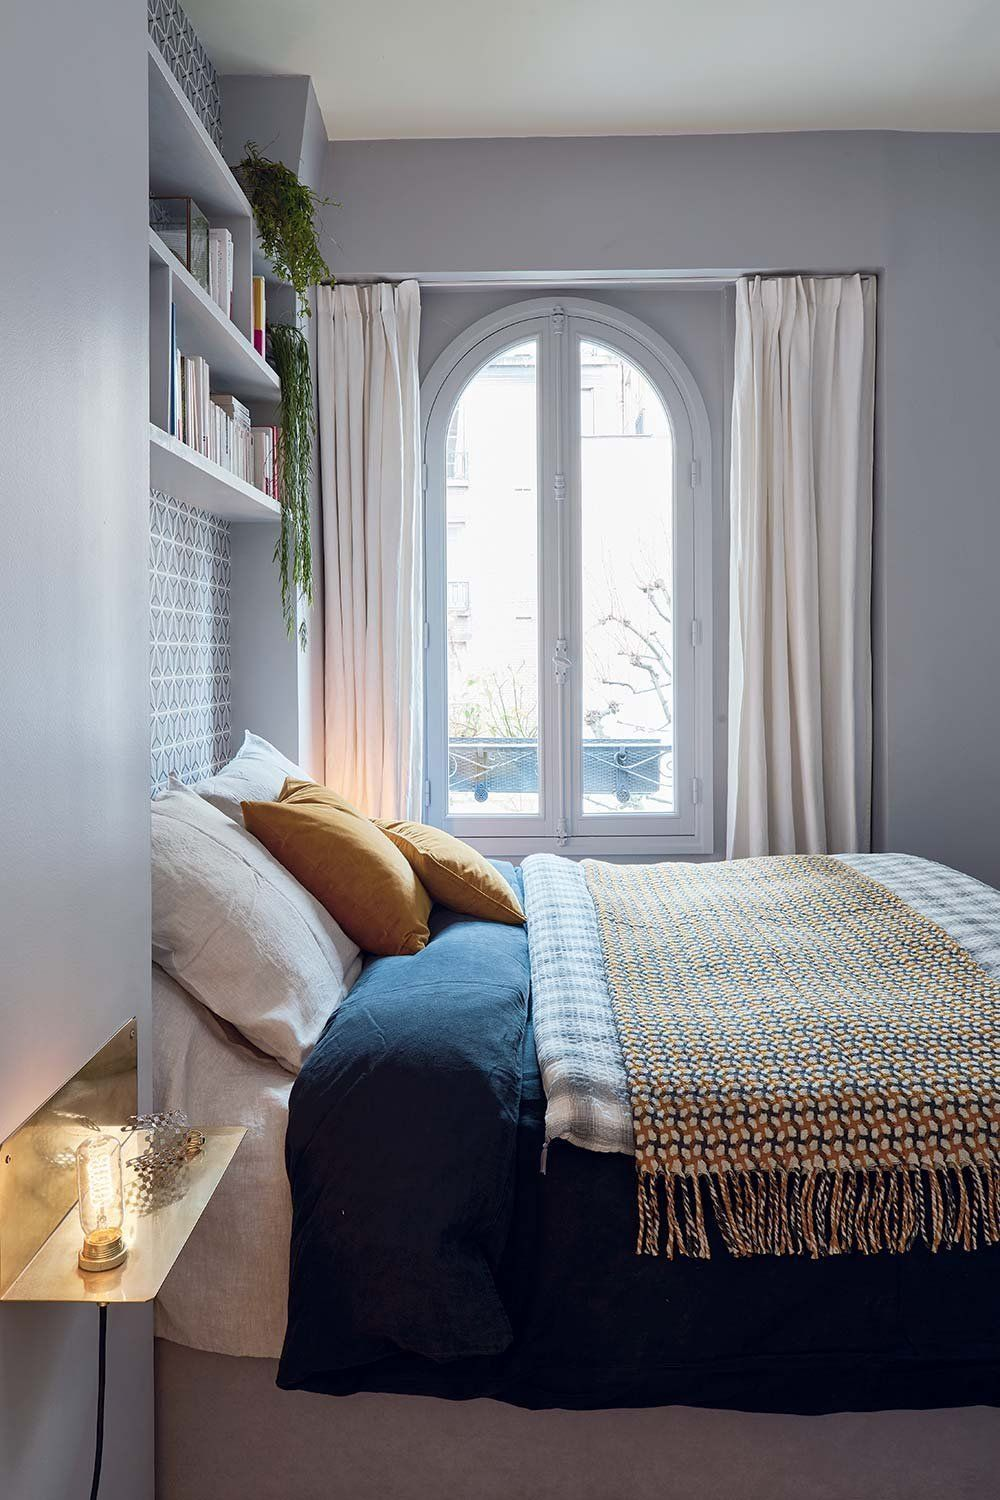 20 Recommended Small Bedroom Ideas 2019 Smallbedroomideas Small Bedroom Decor Ideas Bedroom Decor For Couples Small Bedroom Bedroom Design Small Room Decor